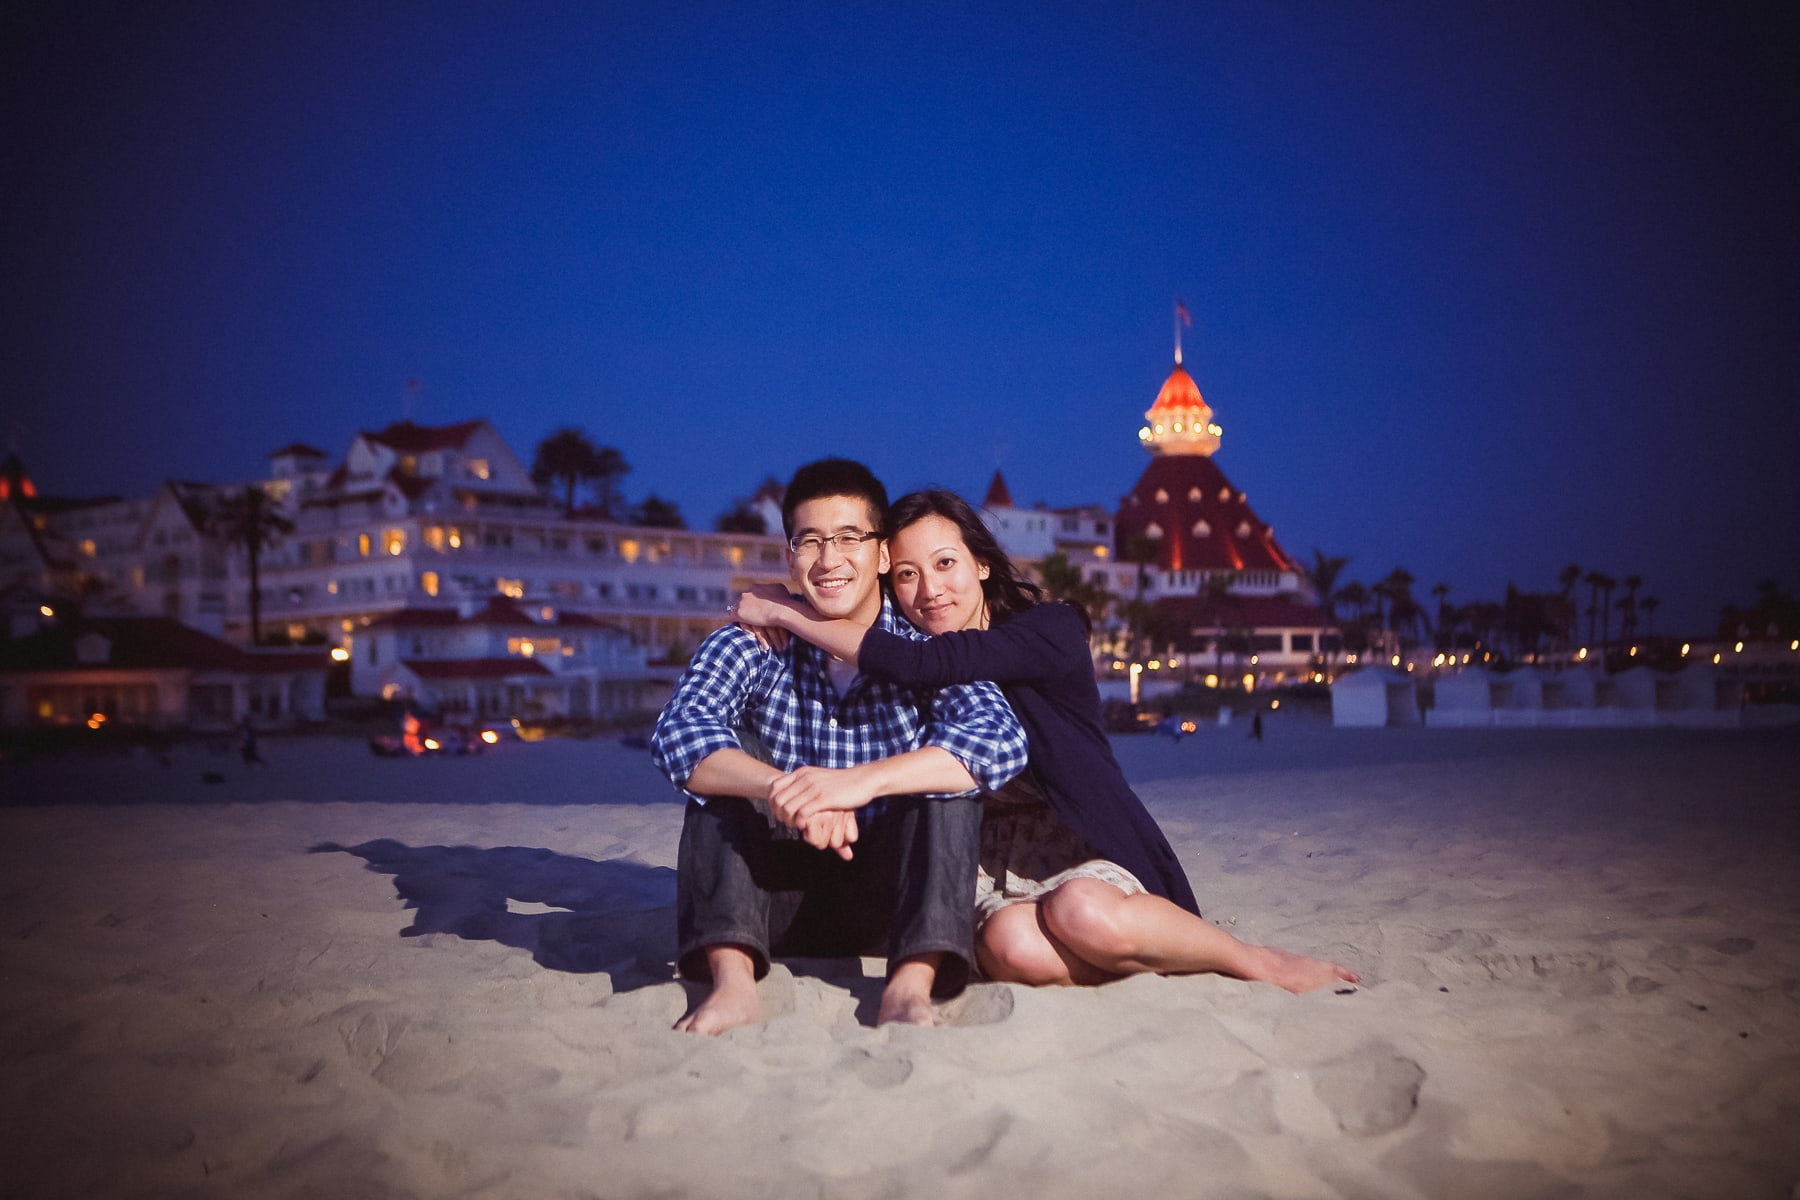 Engagement pictures at night on Coronado with the Hotel Del